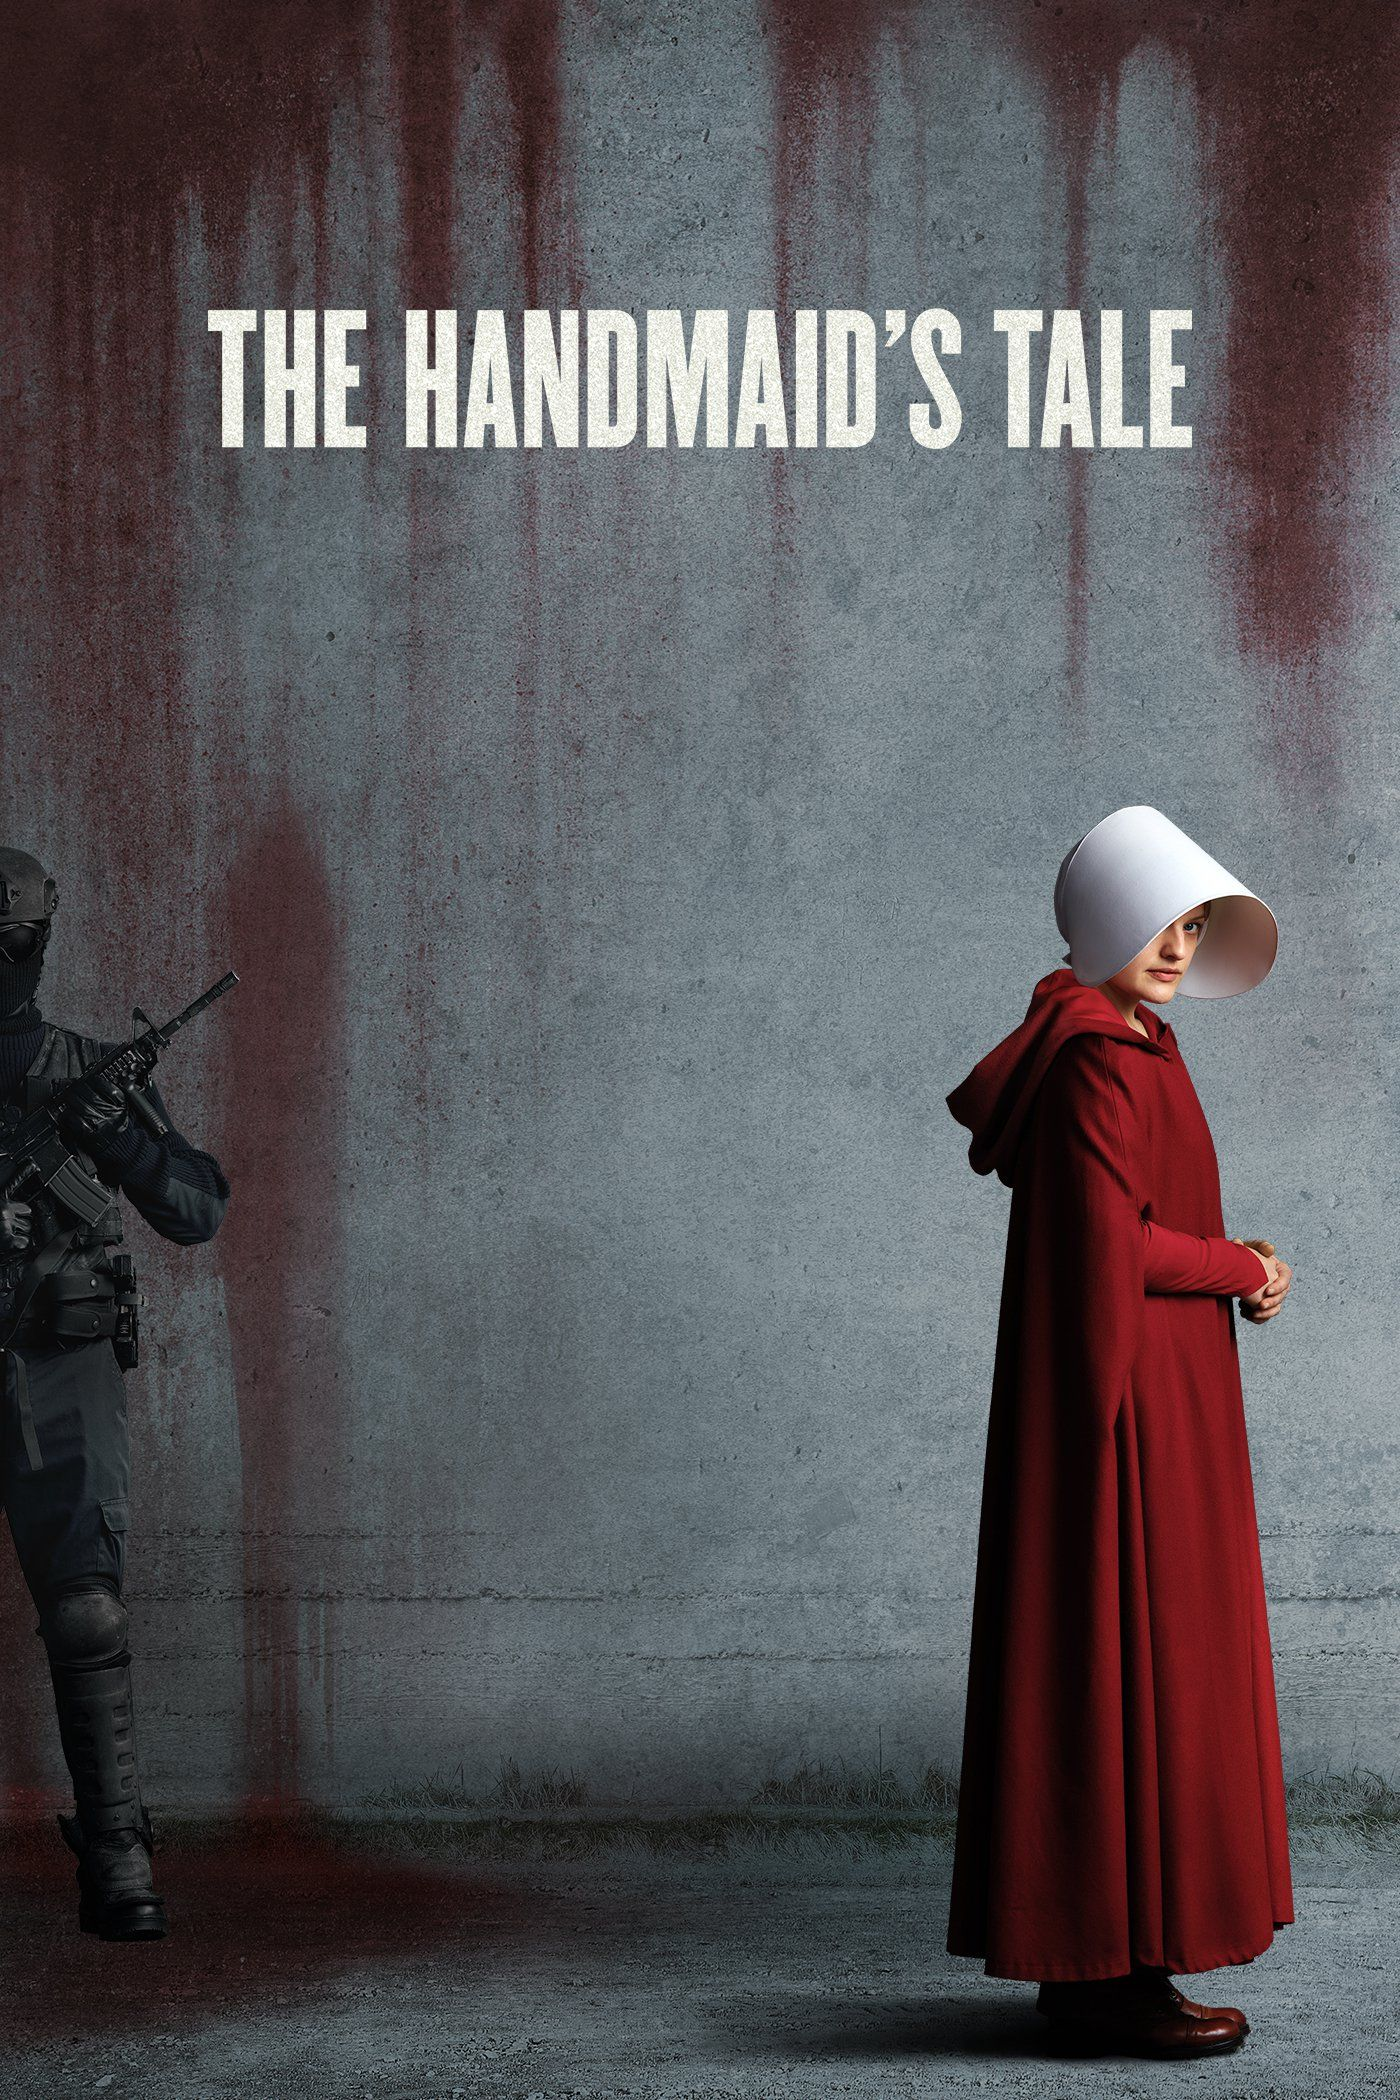 Watch The Handmaid's Tale 2017 Online Free Solarmovies